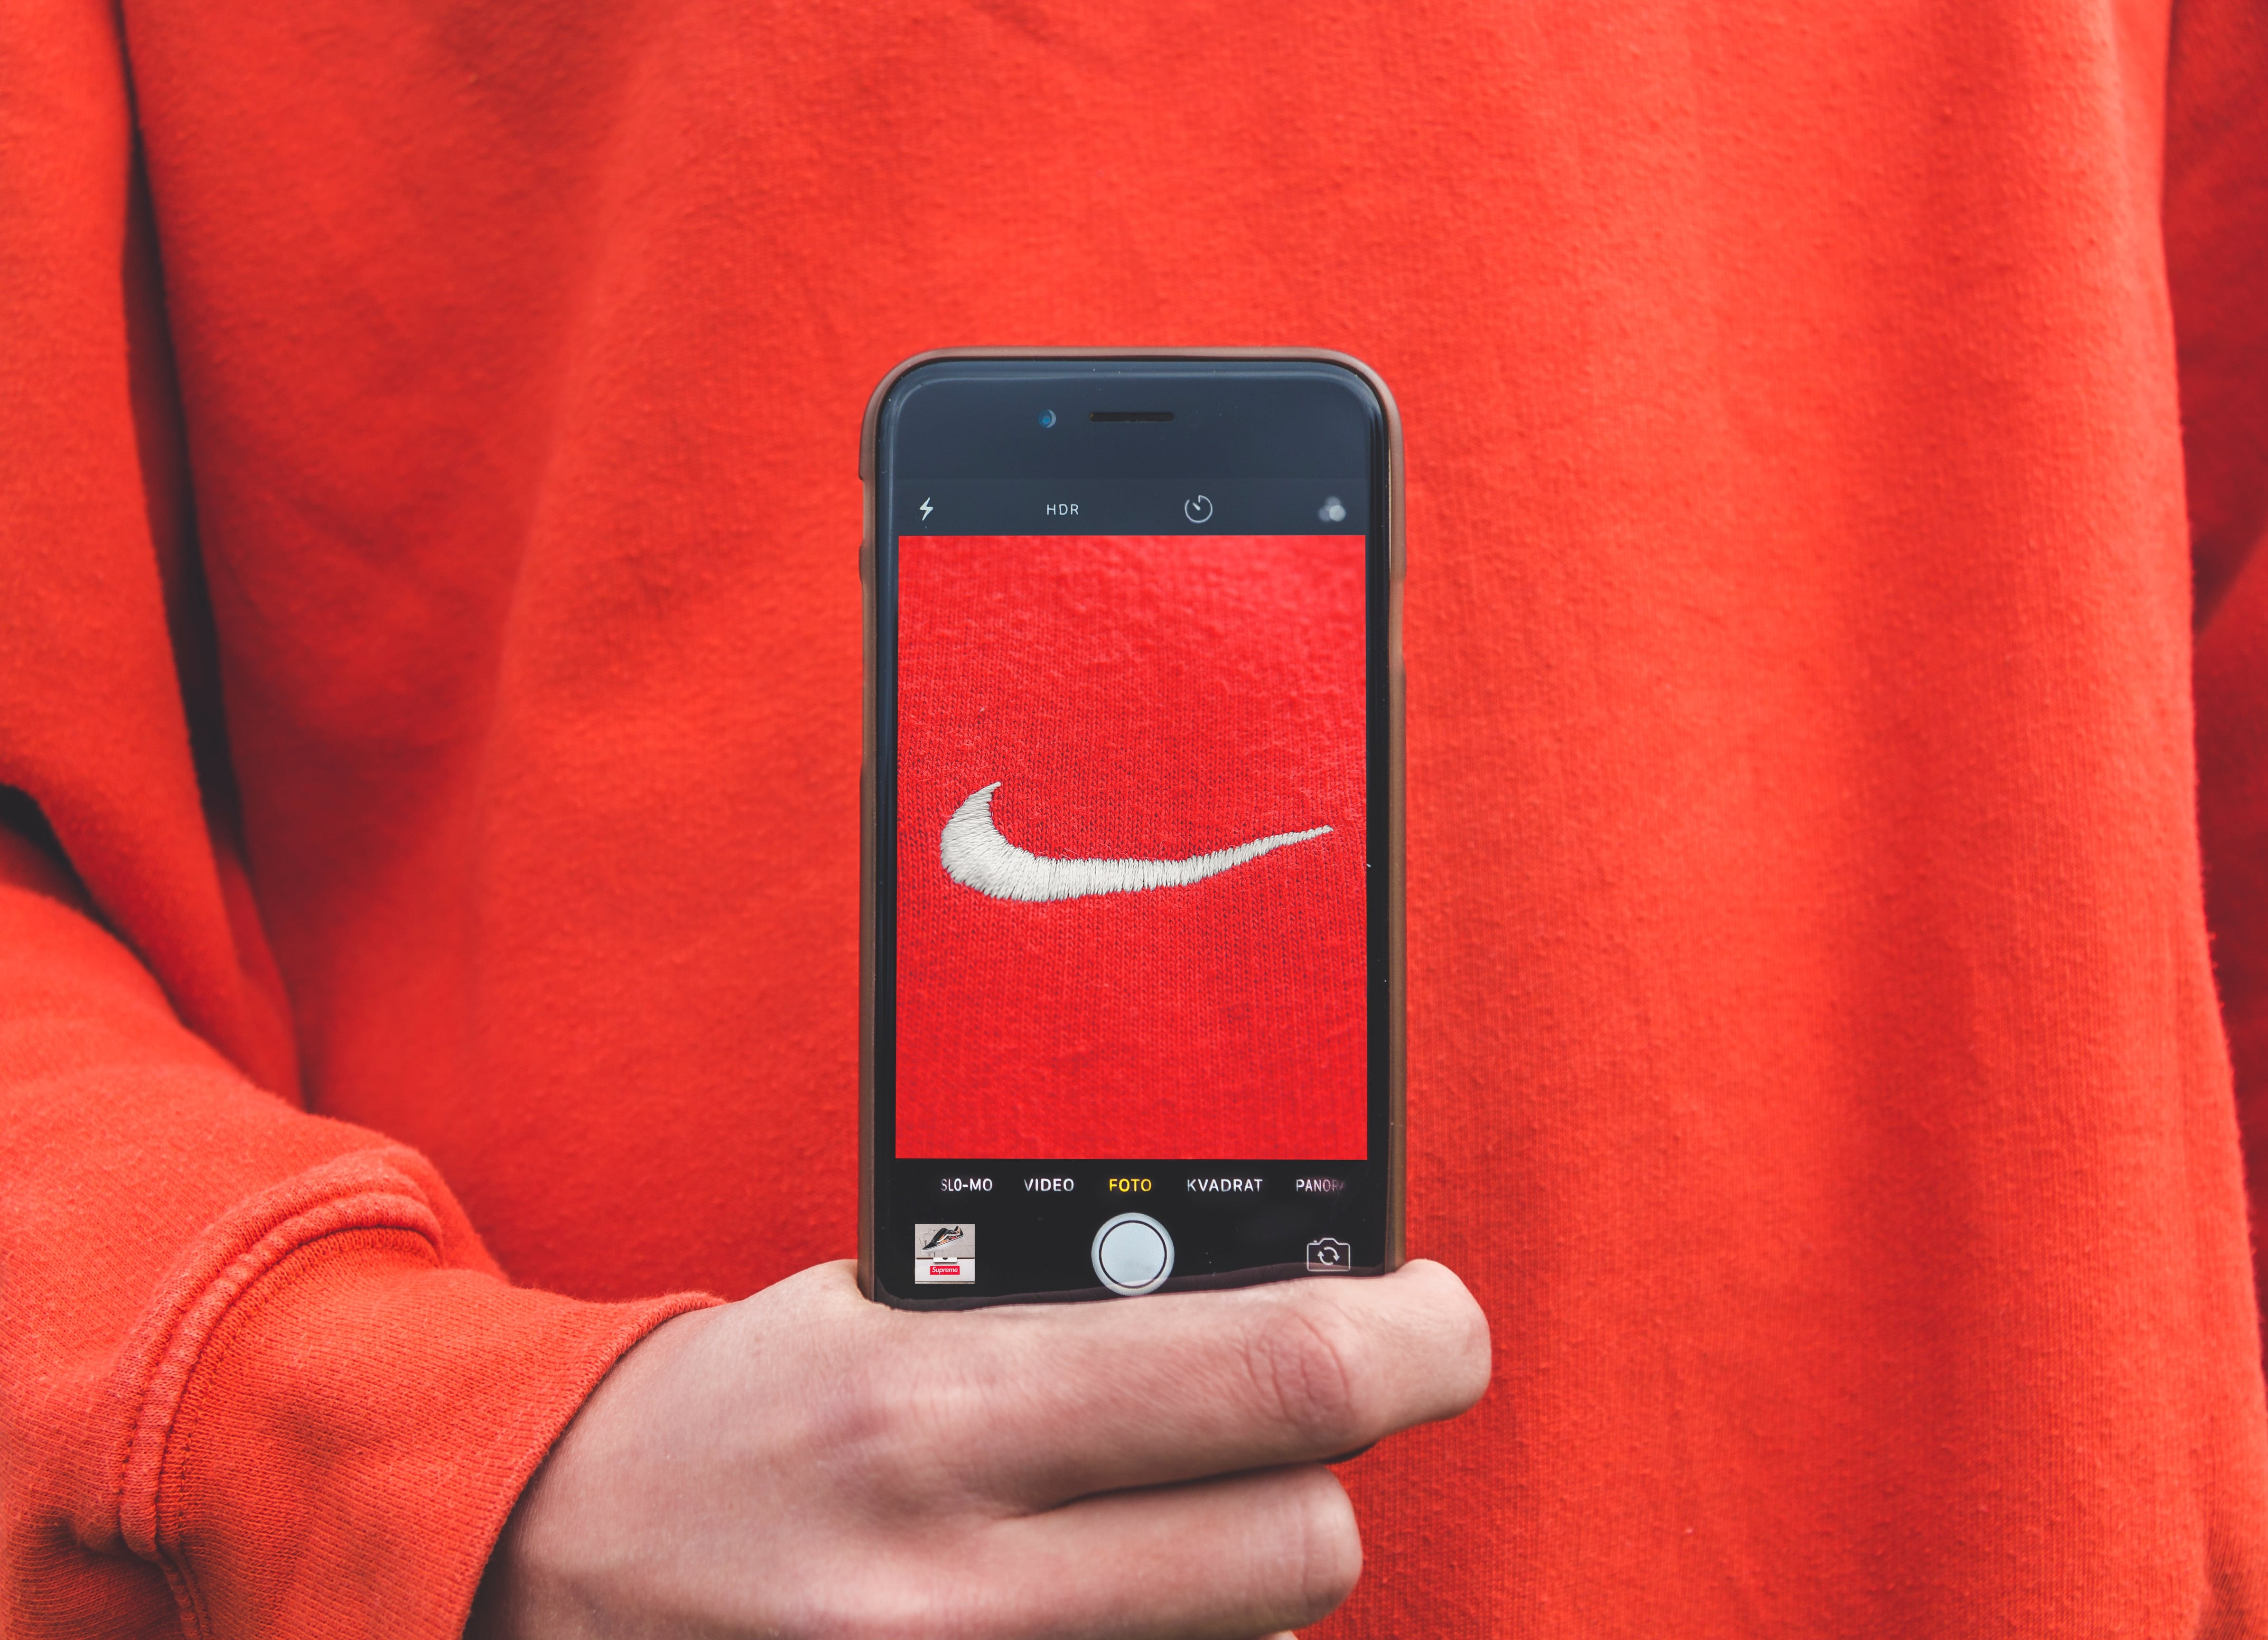 la nouvelle boutique de Nike vivante et digitalisee